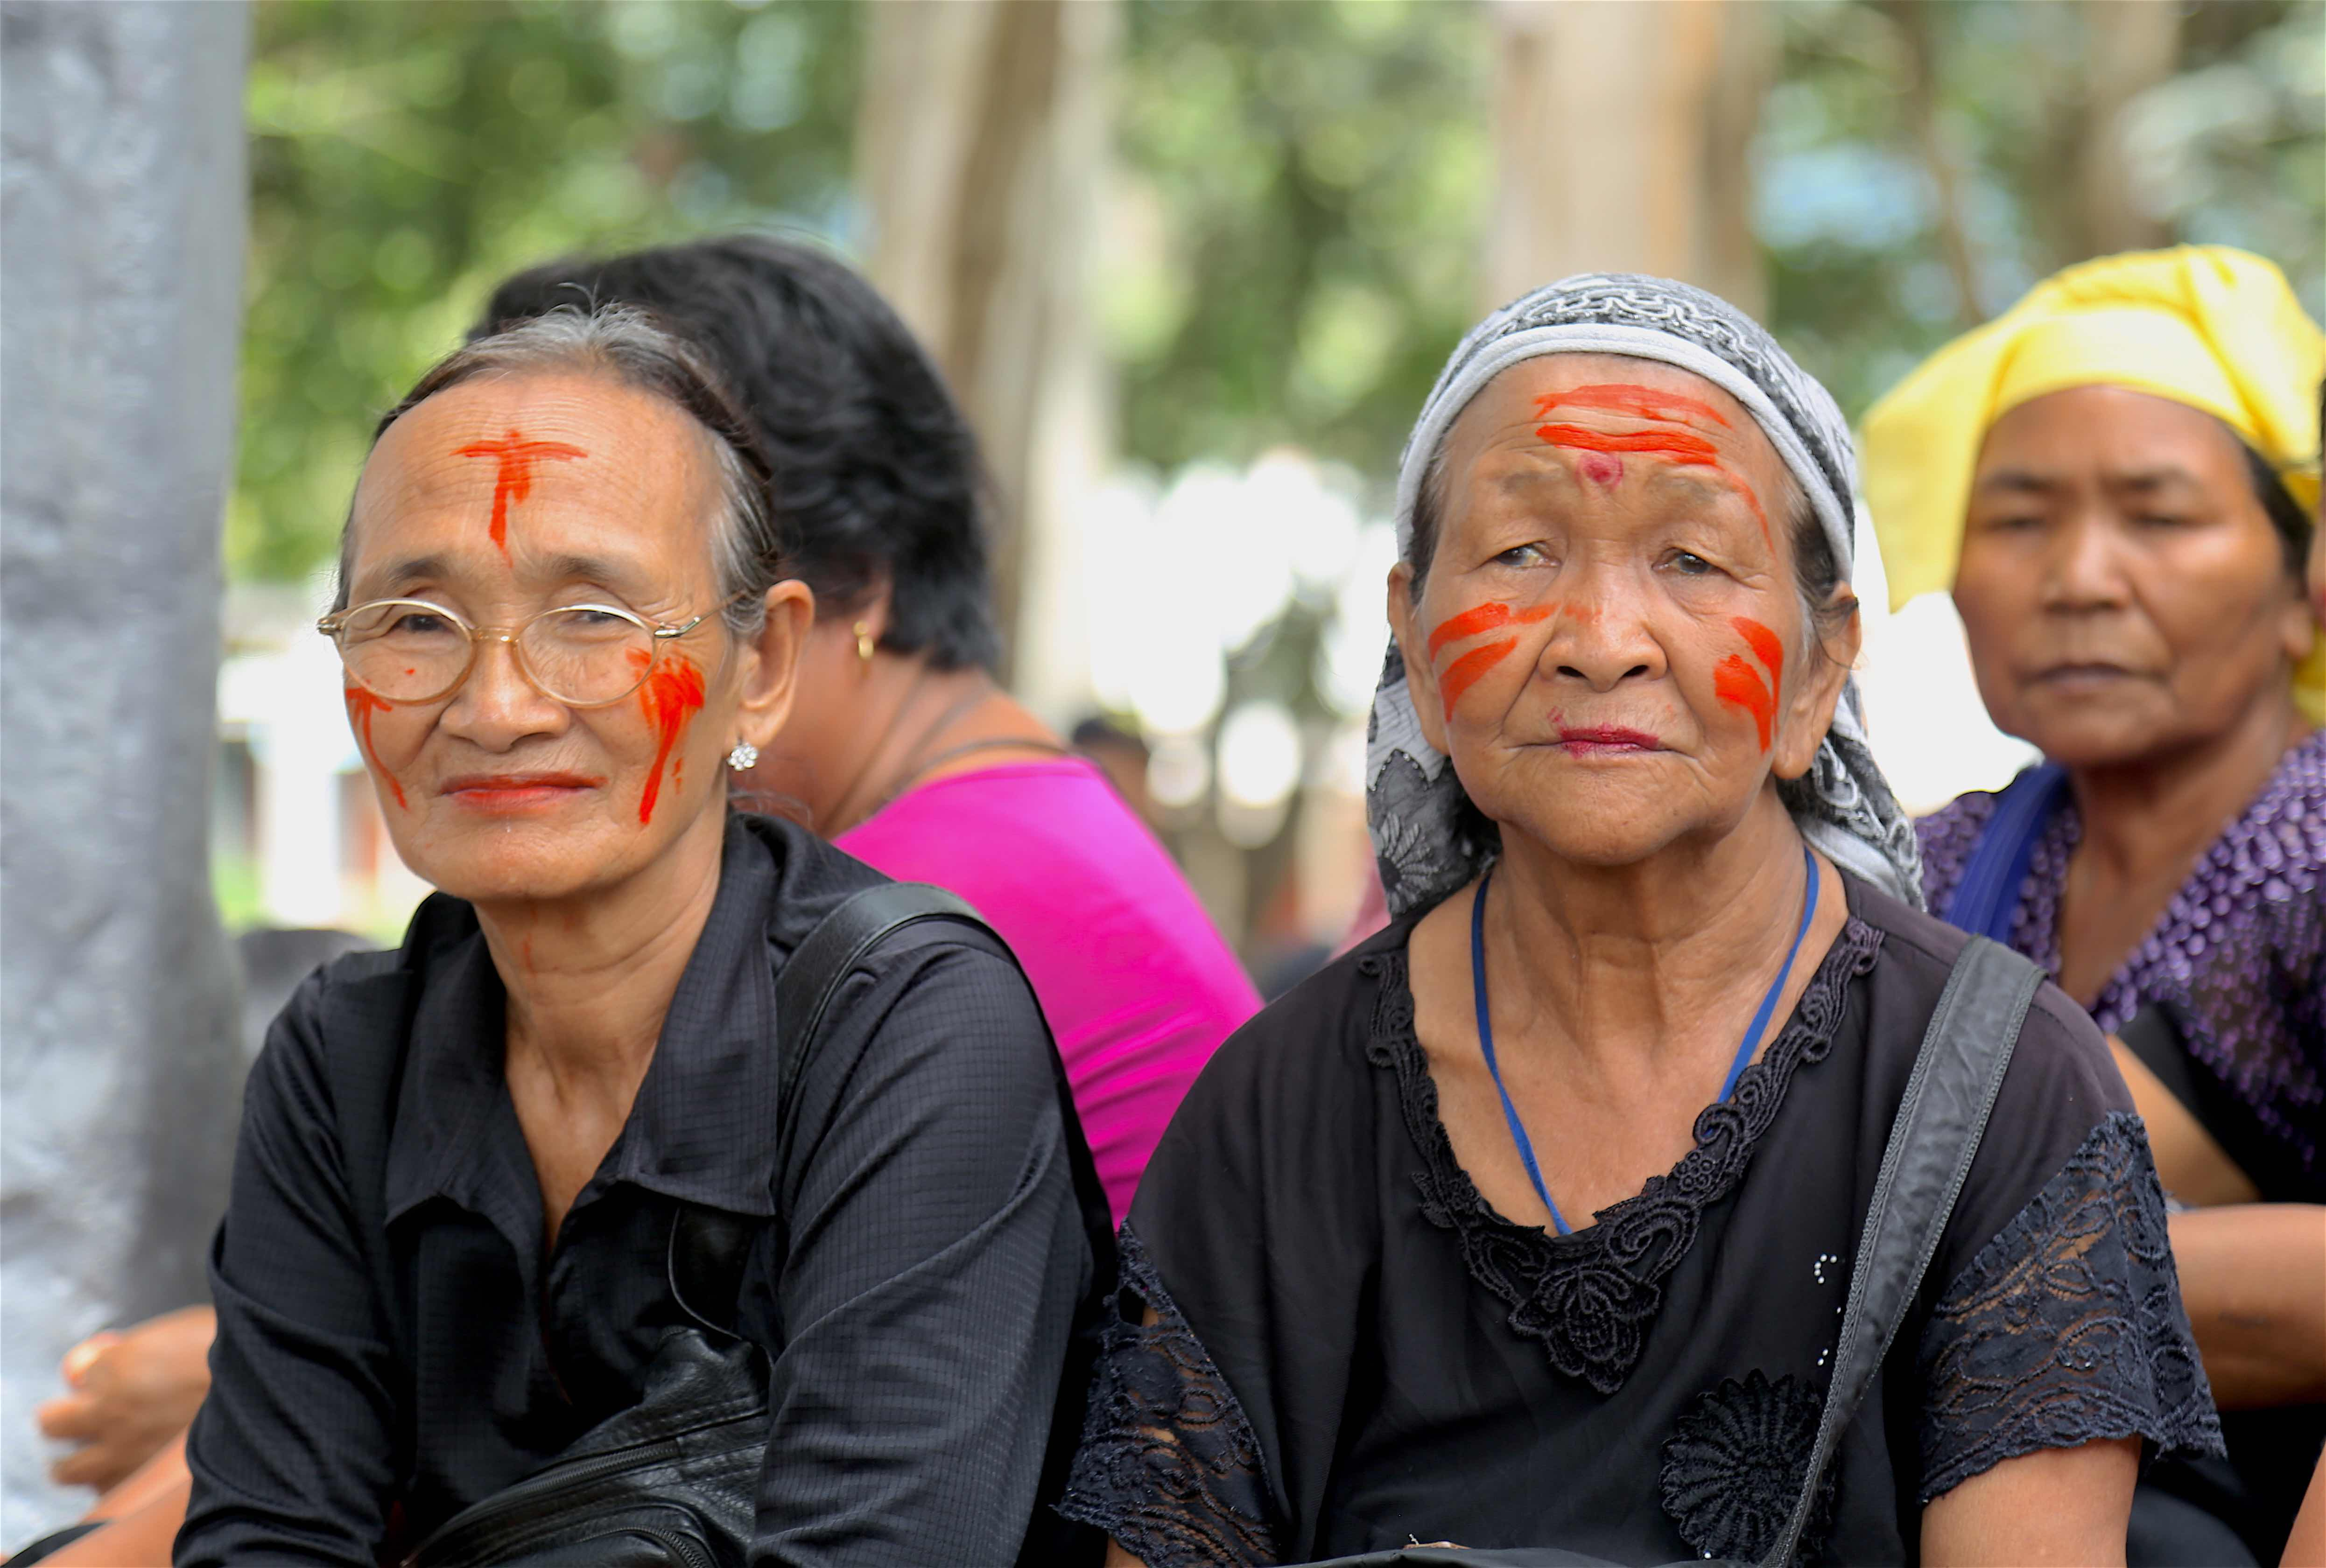 A lot of senior citizens joined the Churachandpur protest by tribals, August 31, 2016. Credit: Akhil Kumar